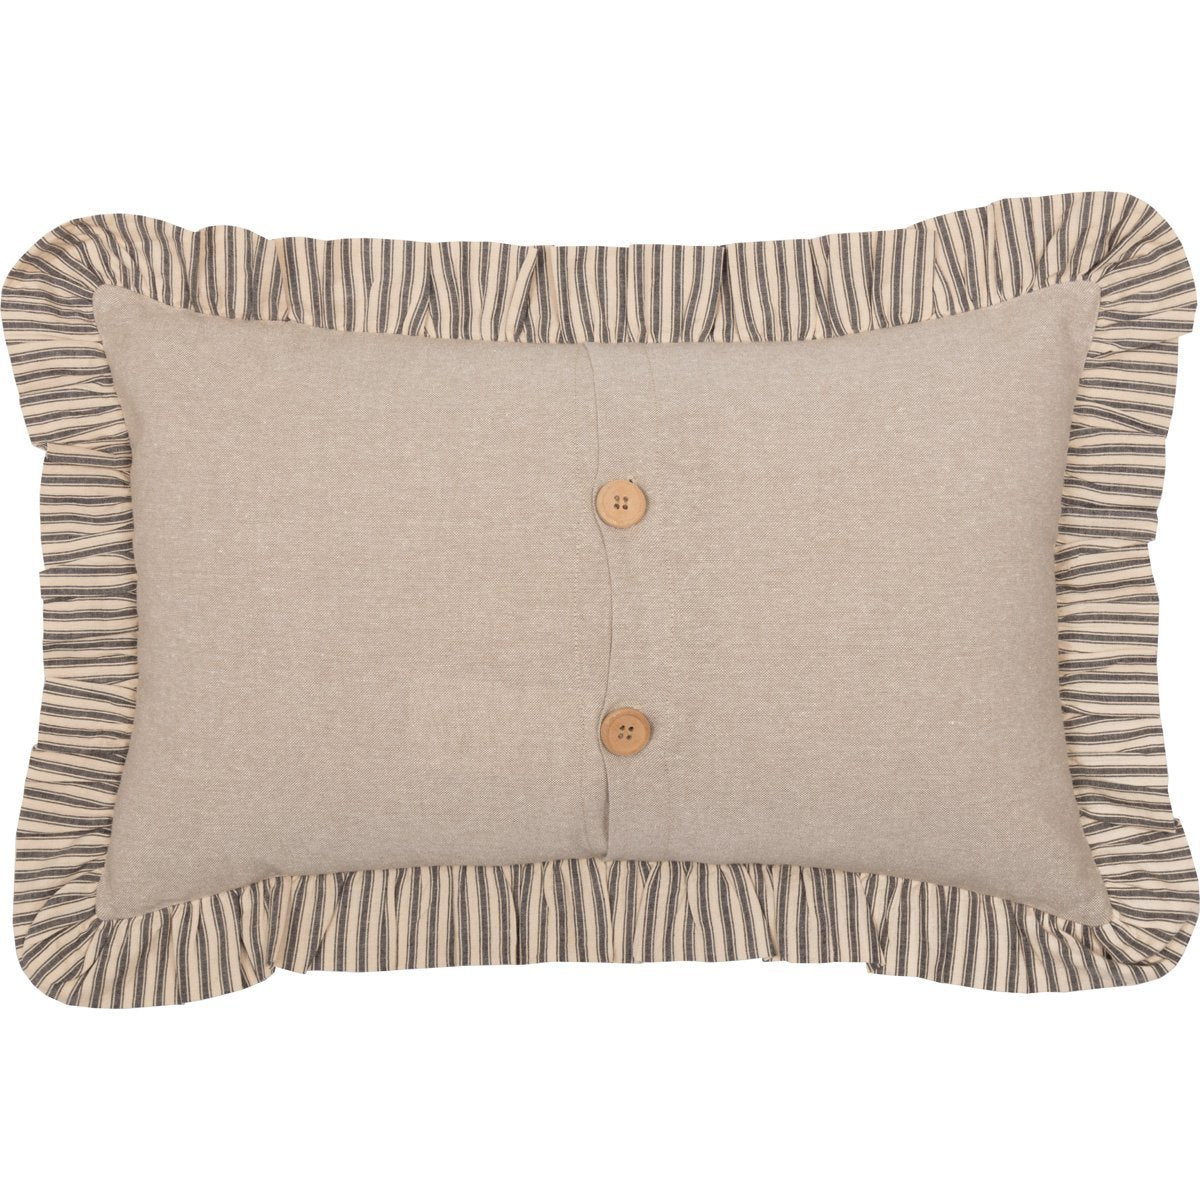 Sawyer Mill Star Charcoal Pillow.